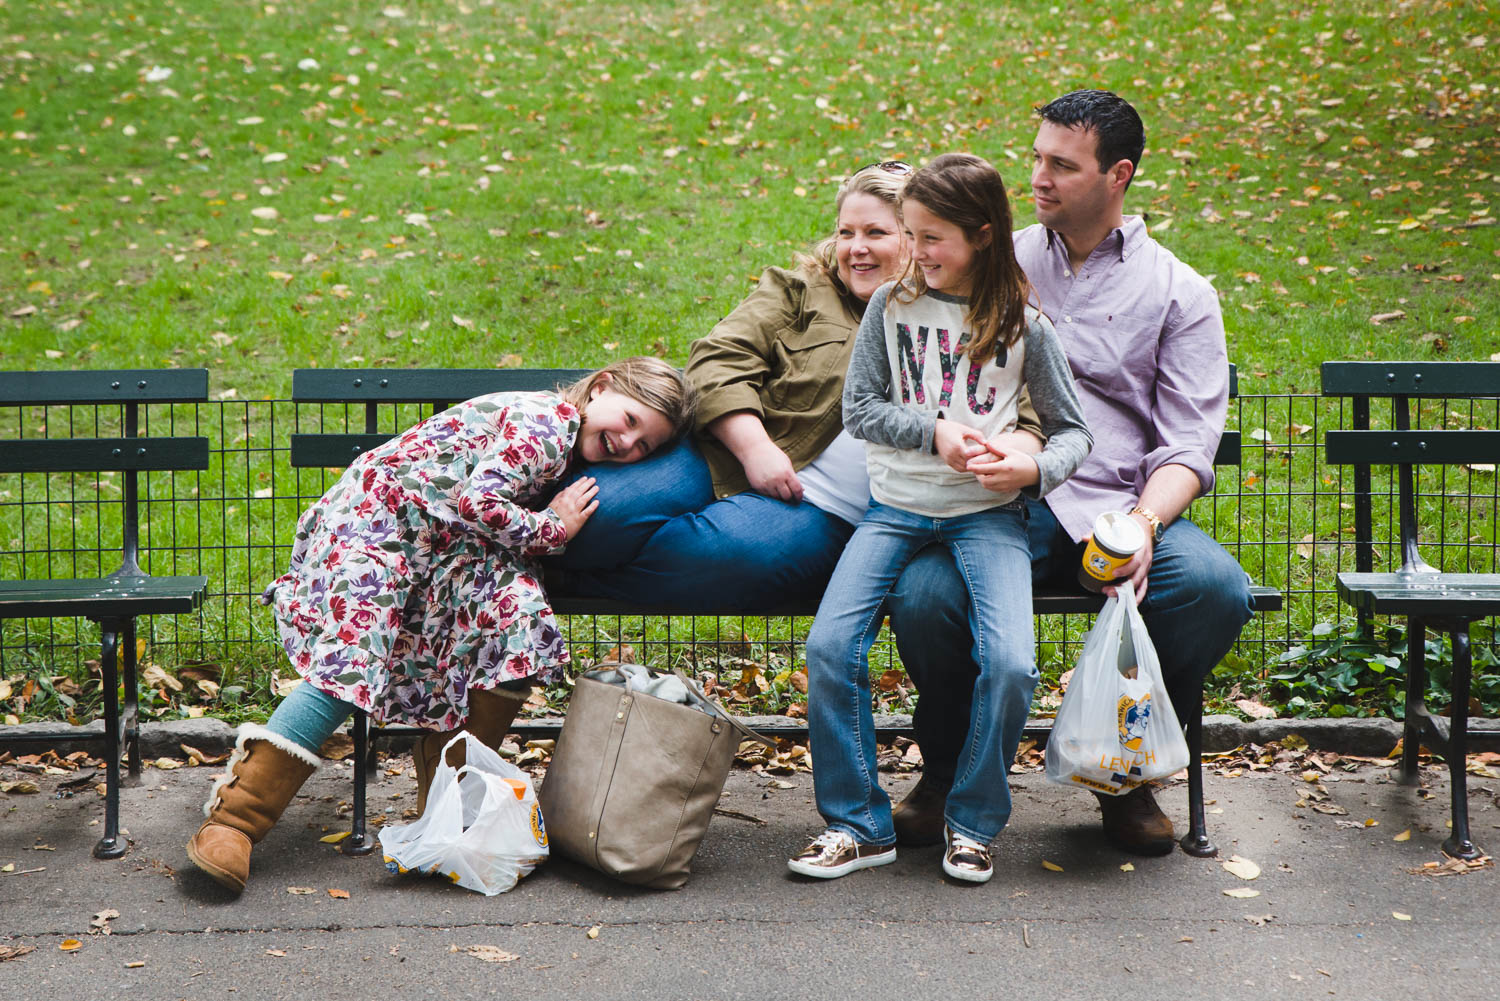 Family resting on a park bench in Central Park.